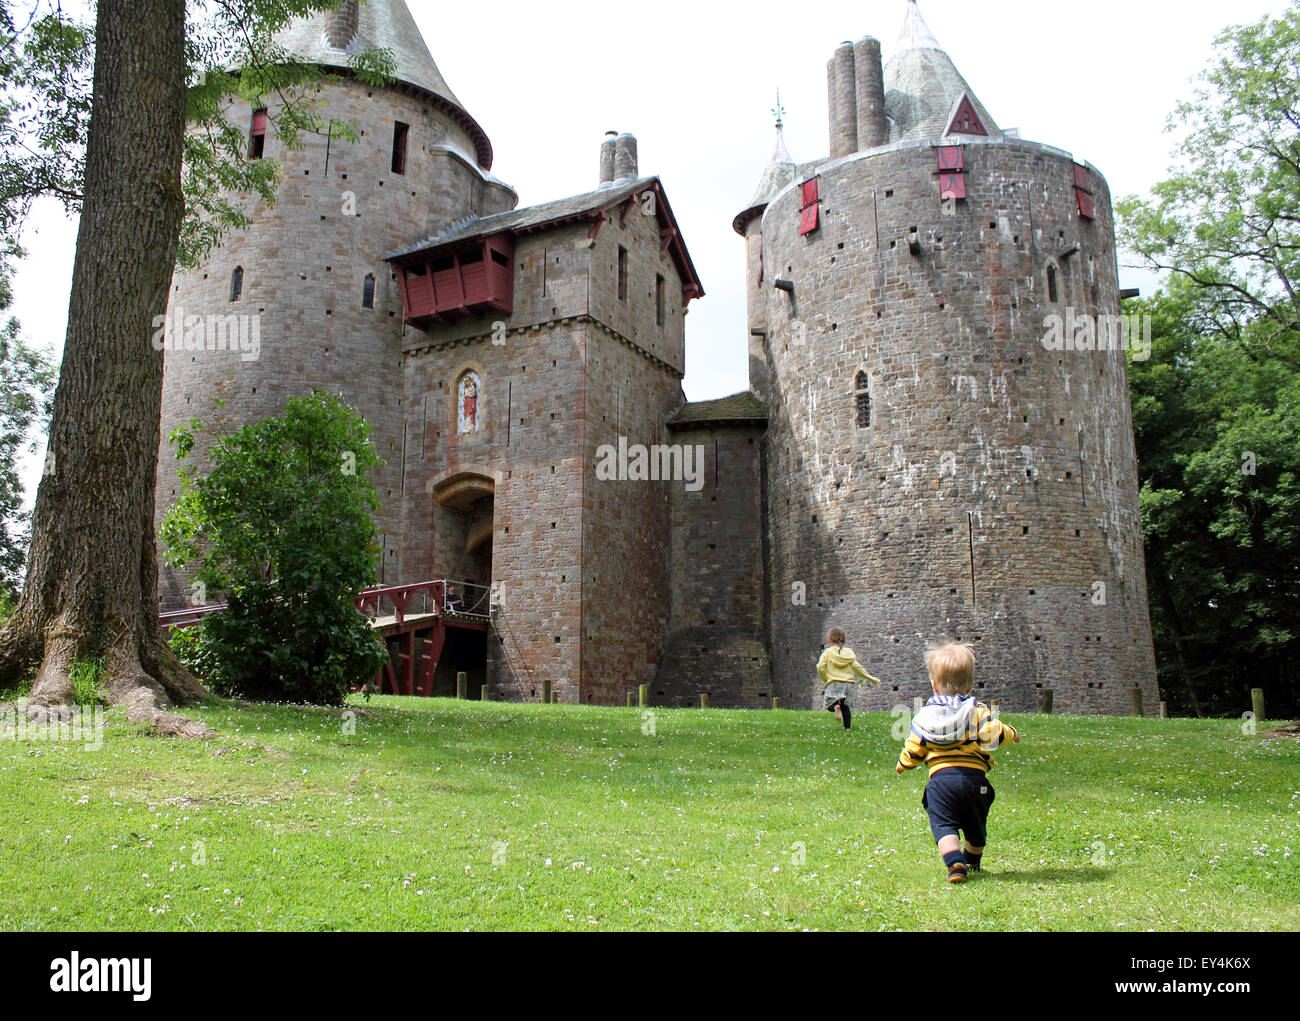 Young boy and girl running towards castle or Castell Coch, Cardiff, South Wales, UK Stock Photo